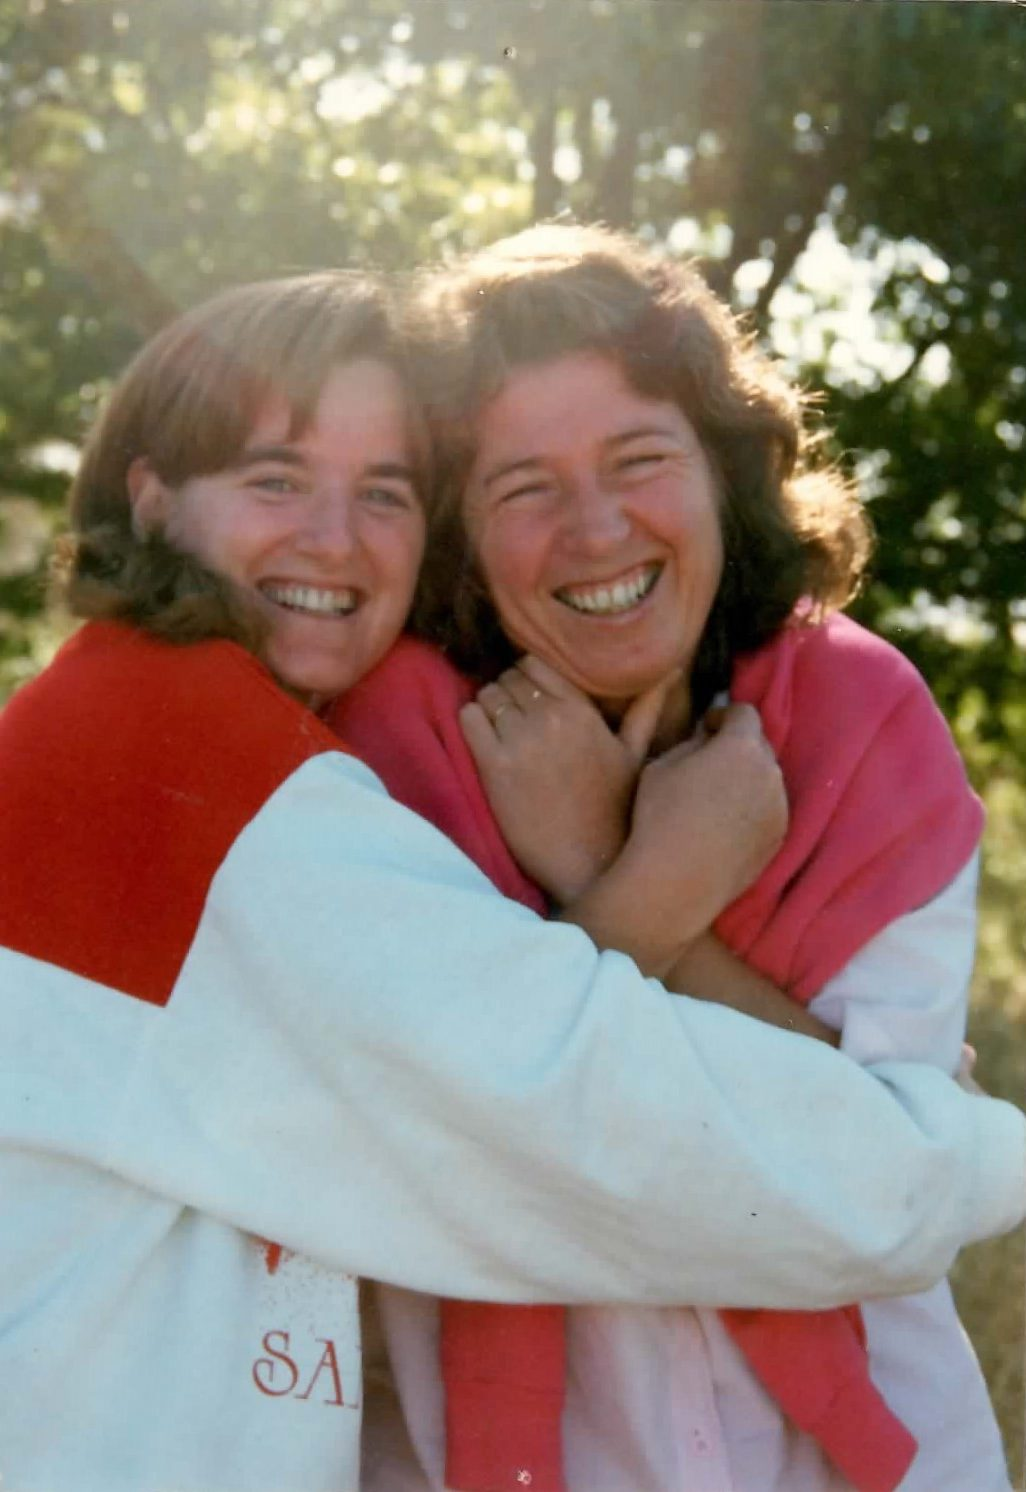 Christine and Jacinta (from earlier photo) – 'moms' for N. California witnessing 1980s.